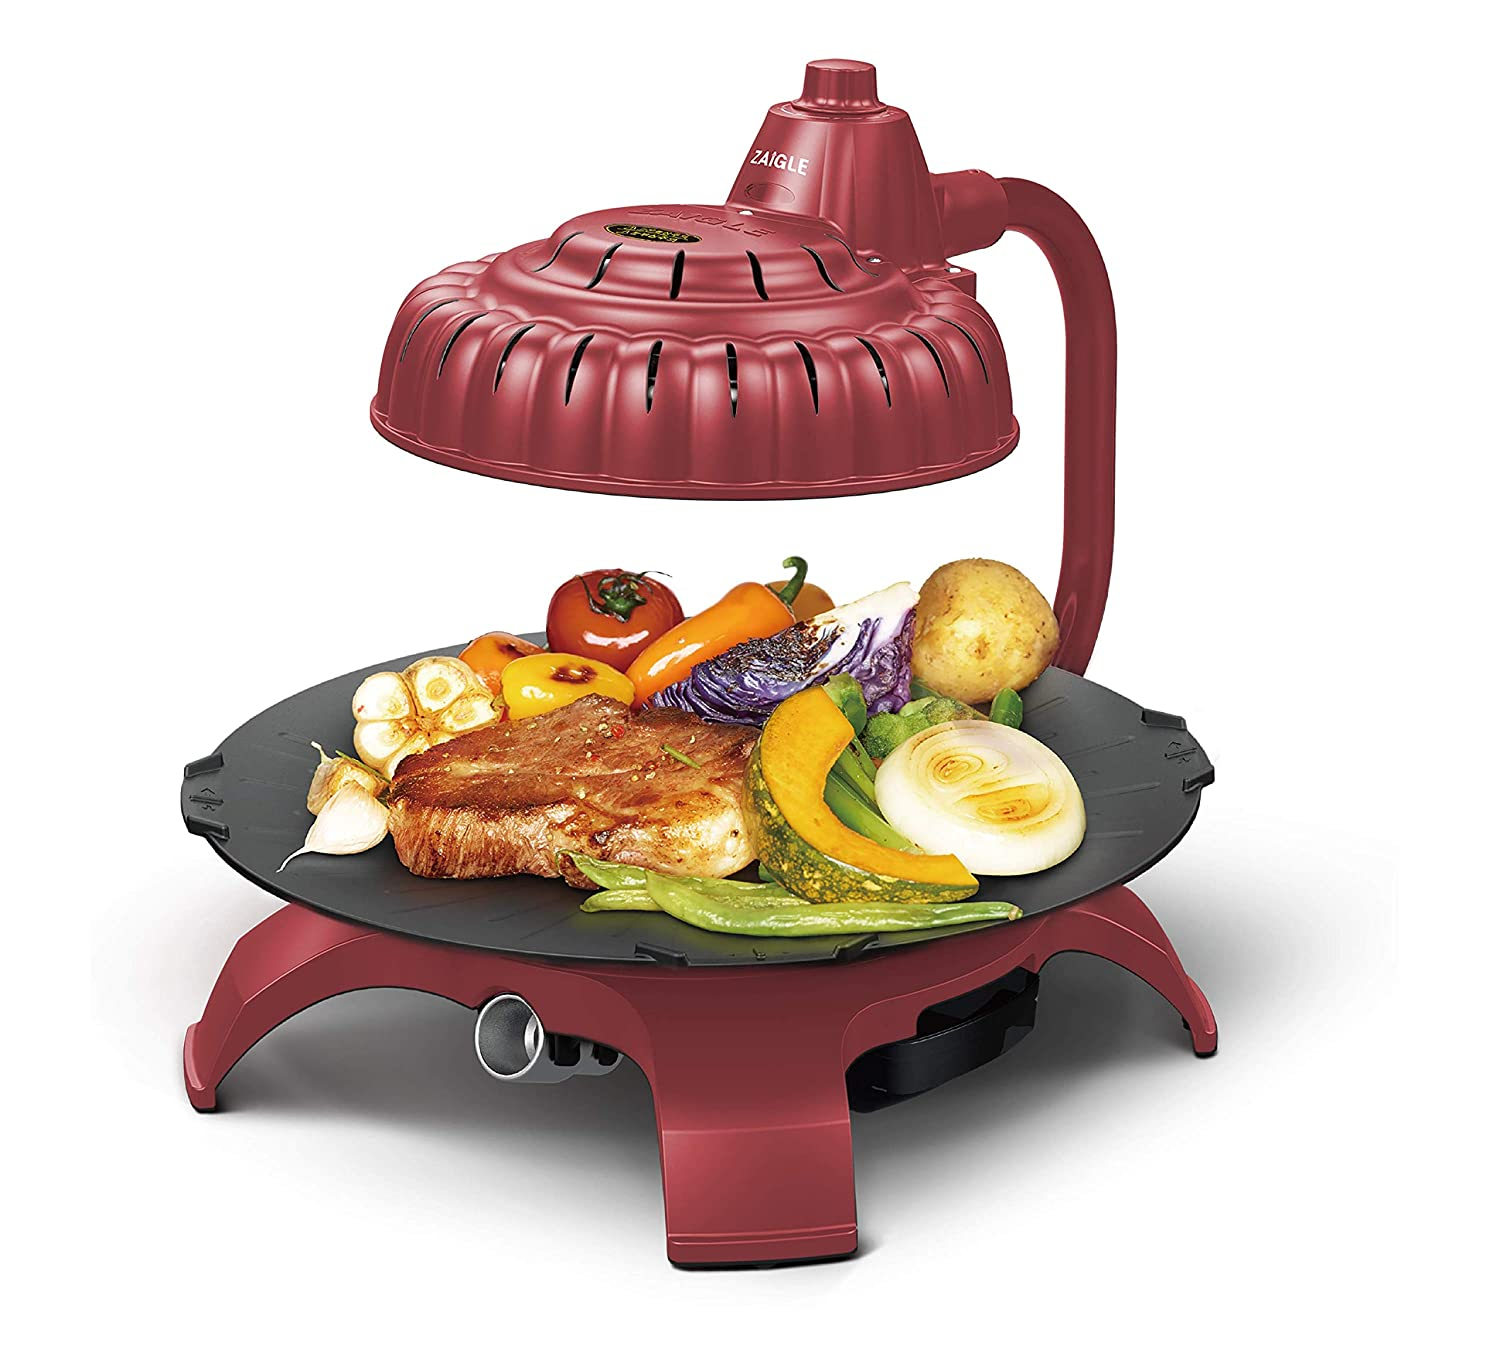 Zaigle ZG-HU375 Handsome Infrared KBBQ Electric Grill, 120v, 3 pans, tongs included (Red)